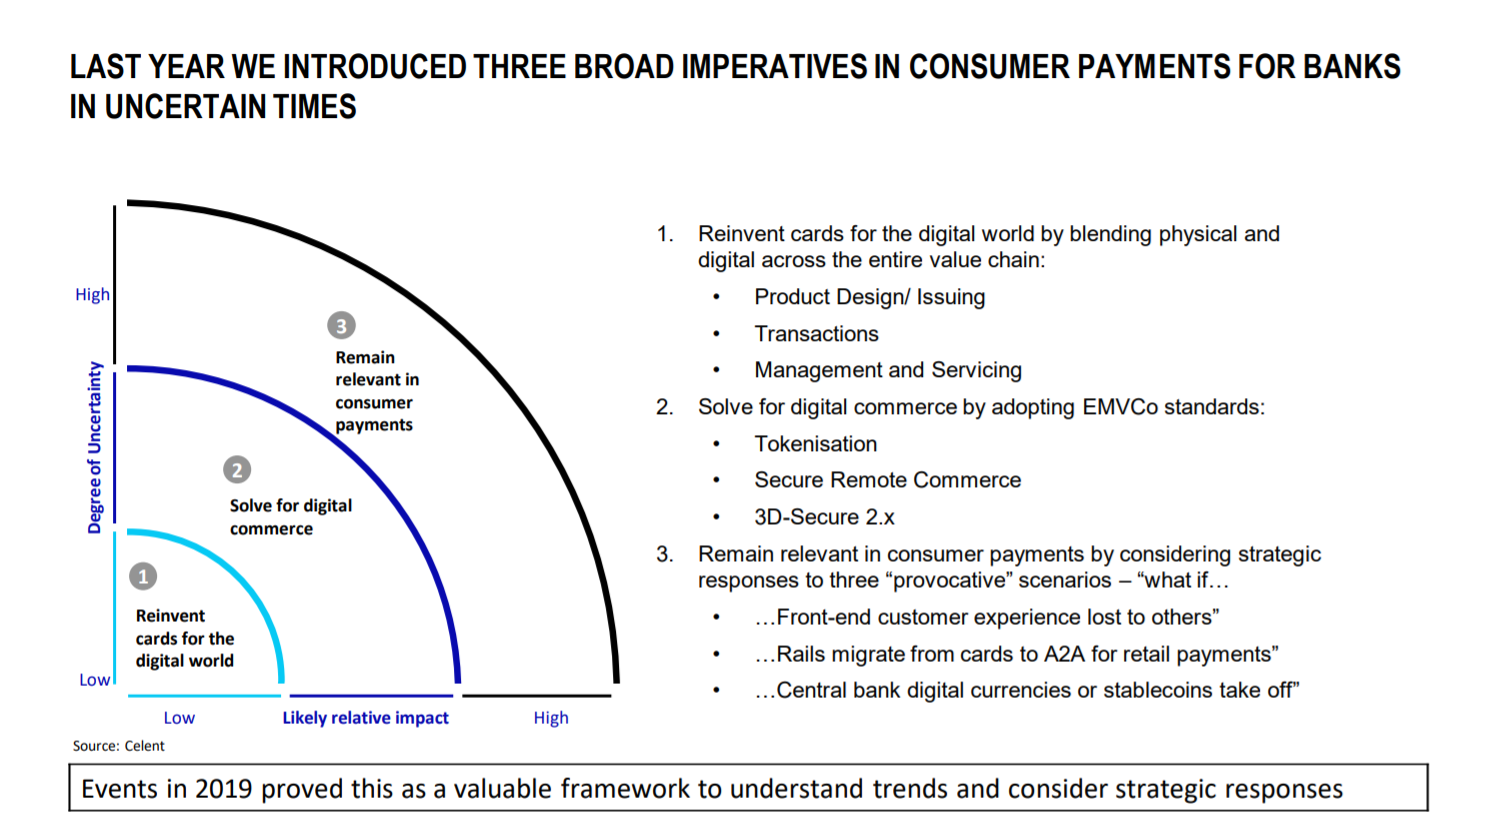 Three Broad Imperatives in Consumer Payments for Banks in Uncertain Times